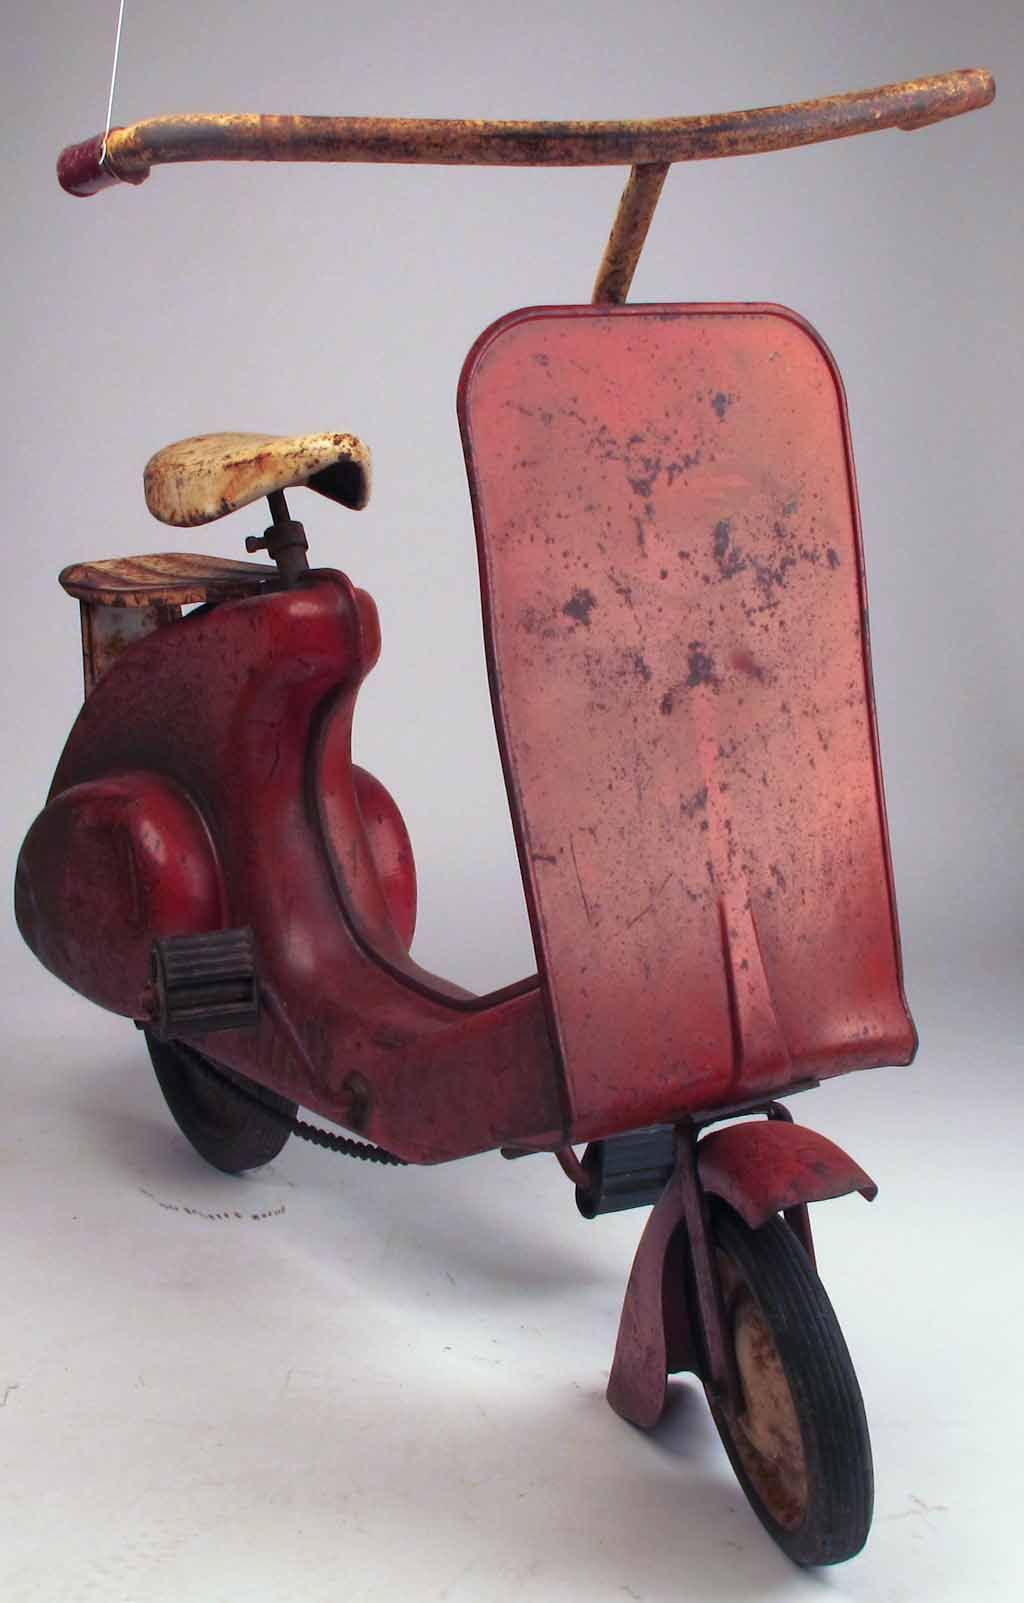 6381b2d4e89 (Rare Vintage 1950 s Garton Super Sonda Red Pedal Car Scooter (according to  data I found